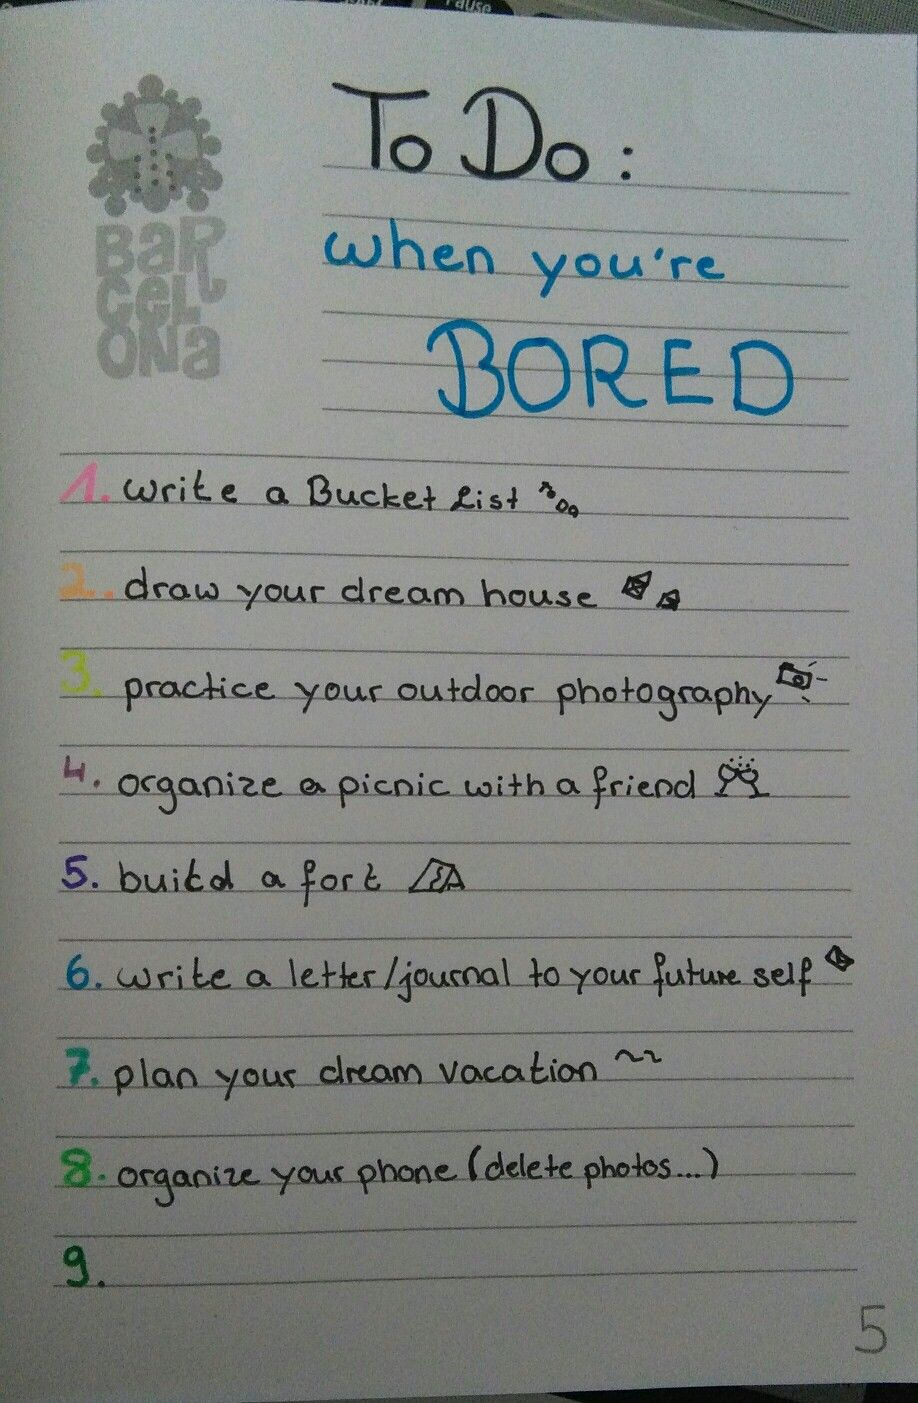 Things to do when bored with a friend at home